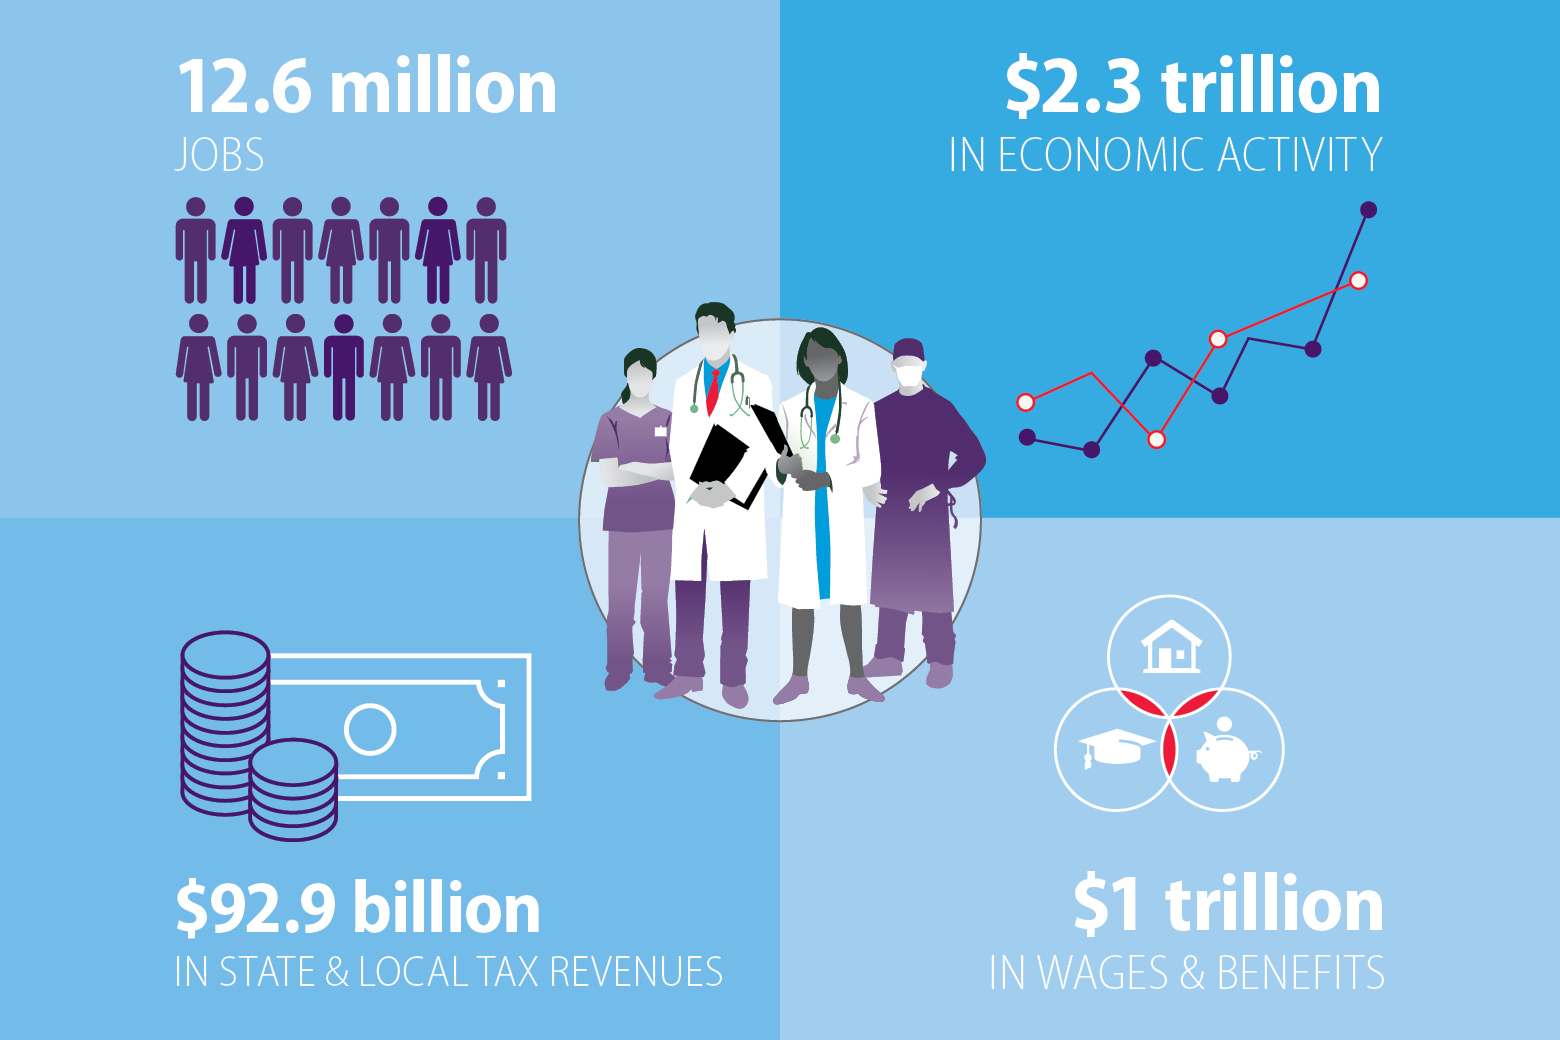 National Economic Impact of Physicians - AMA report